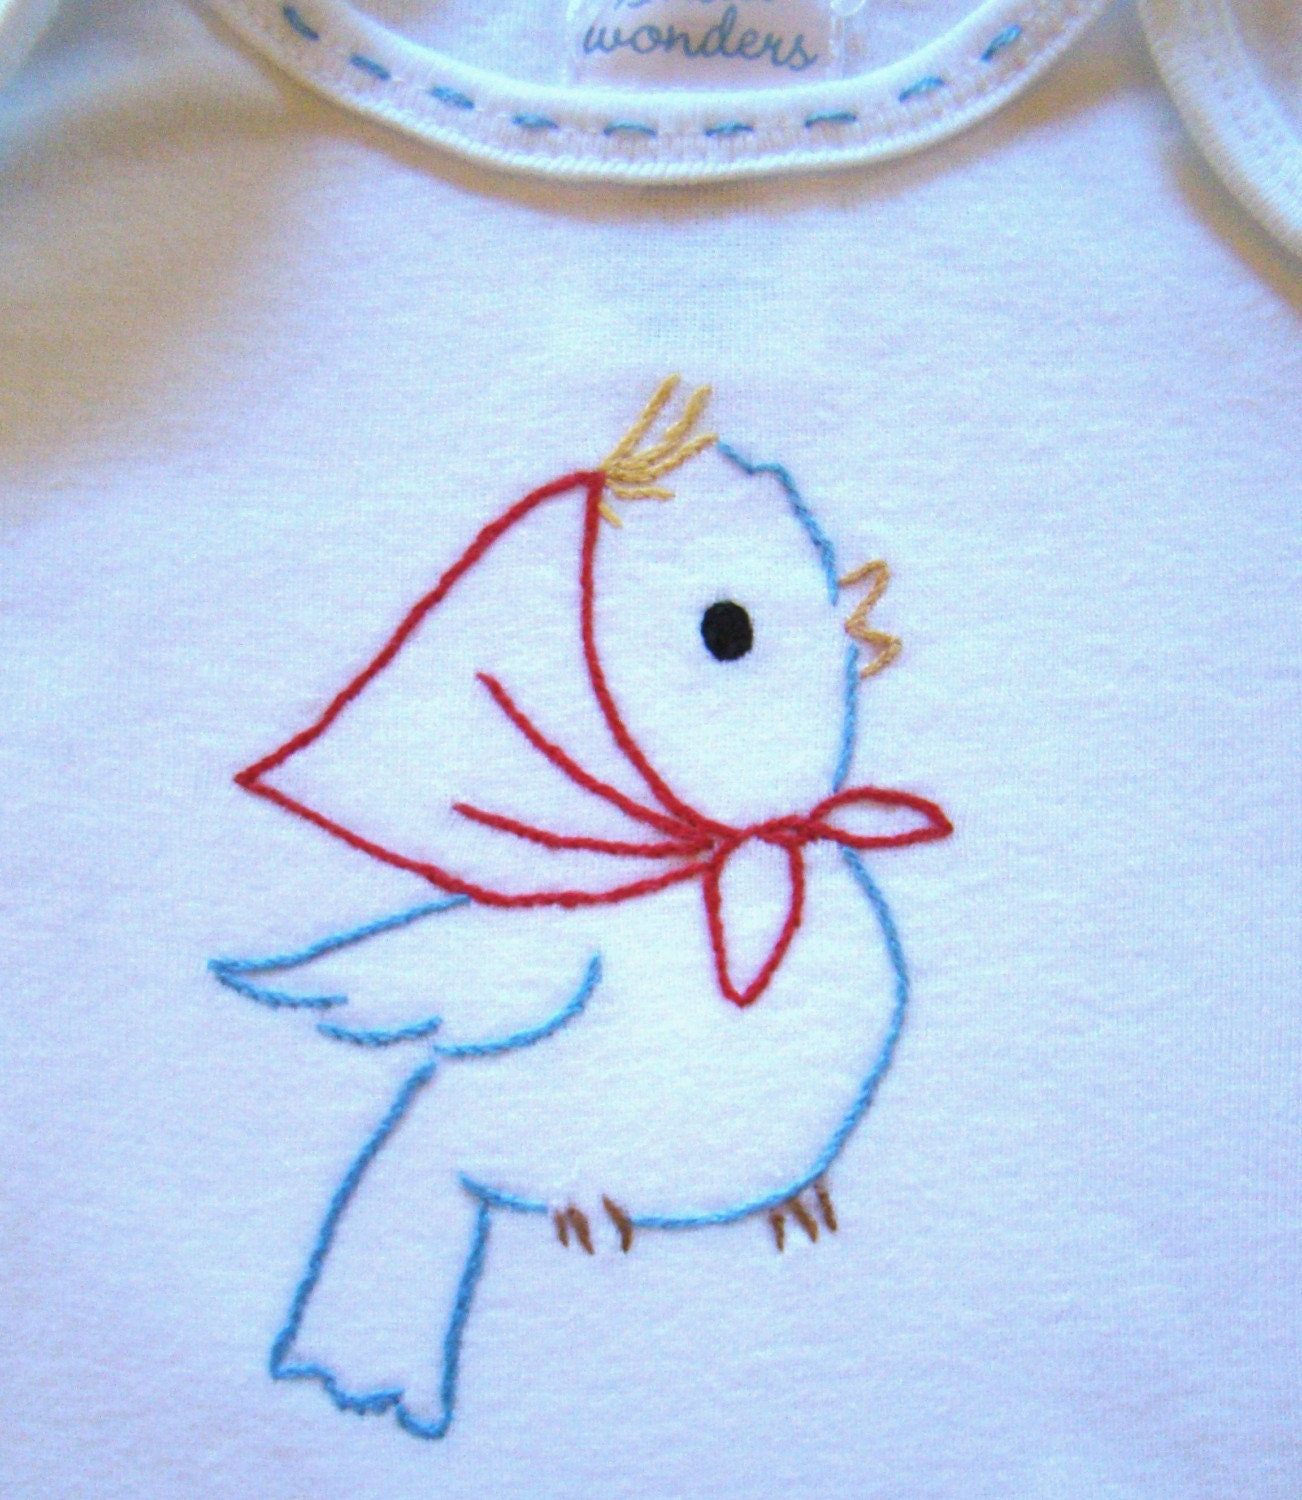 Hand Stitched Embroidery Patterns 171 Embroidery Amp Origami